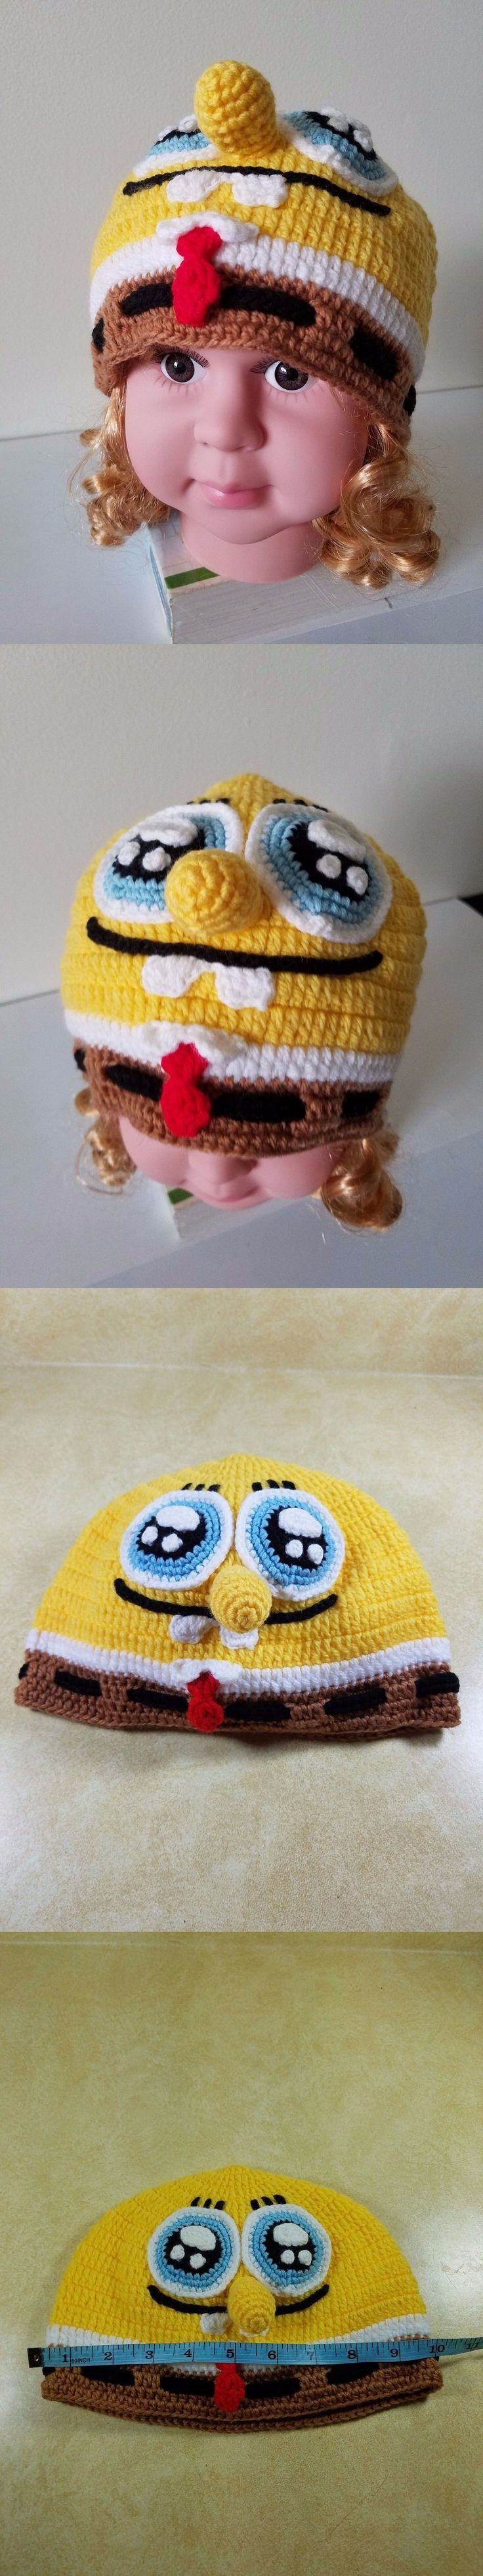 Hats 163224: 5-10 Year Old Kids Halloween Spongbob Squarepants Character Hand Crocheted Hat -> BUY IT NOW ONLY: $30 on eBay!